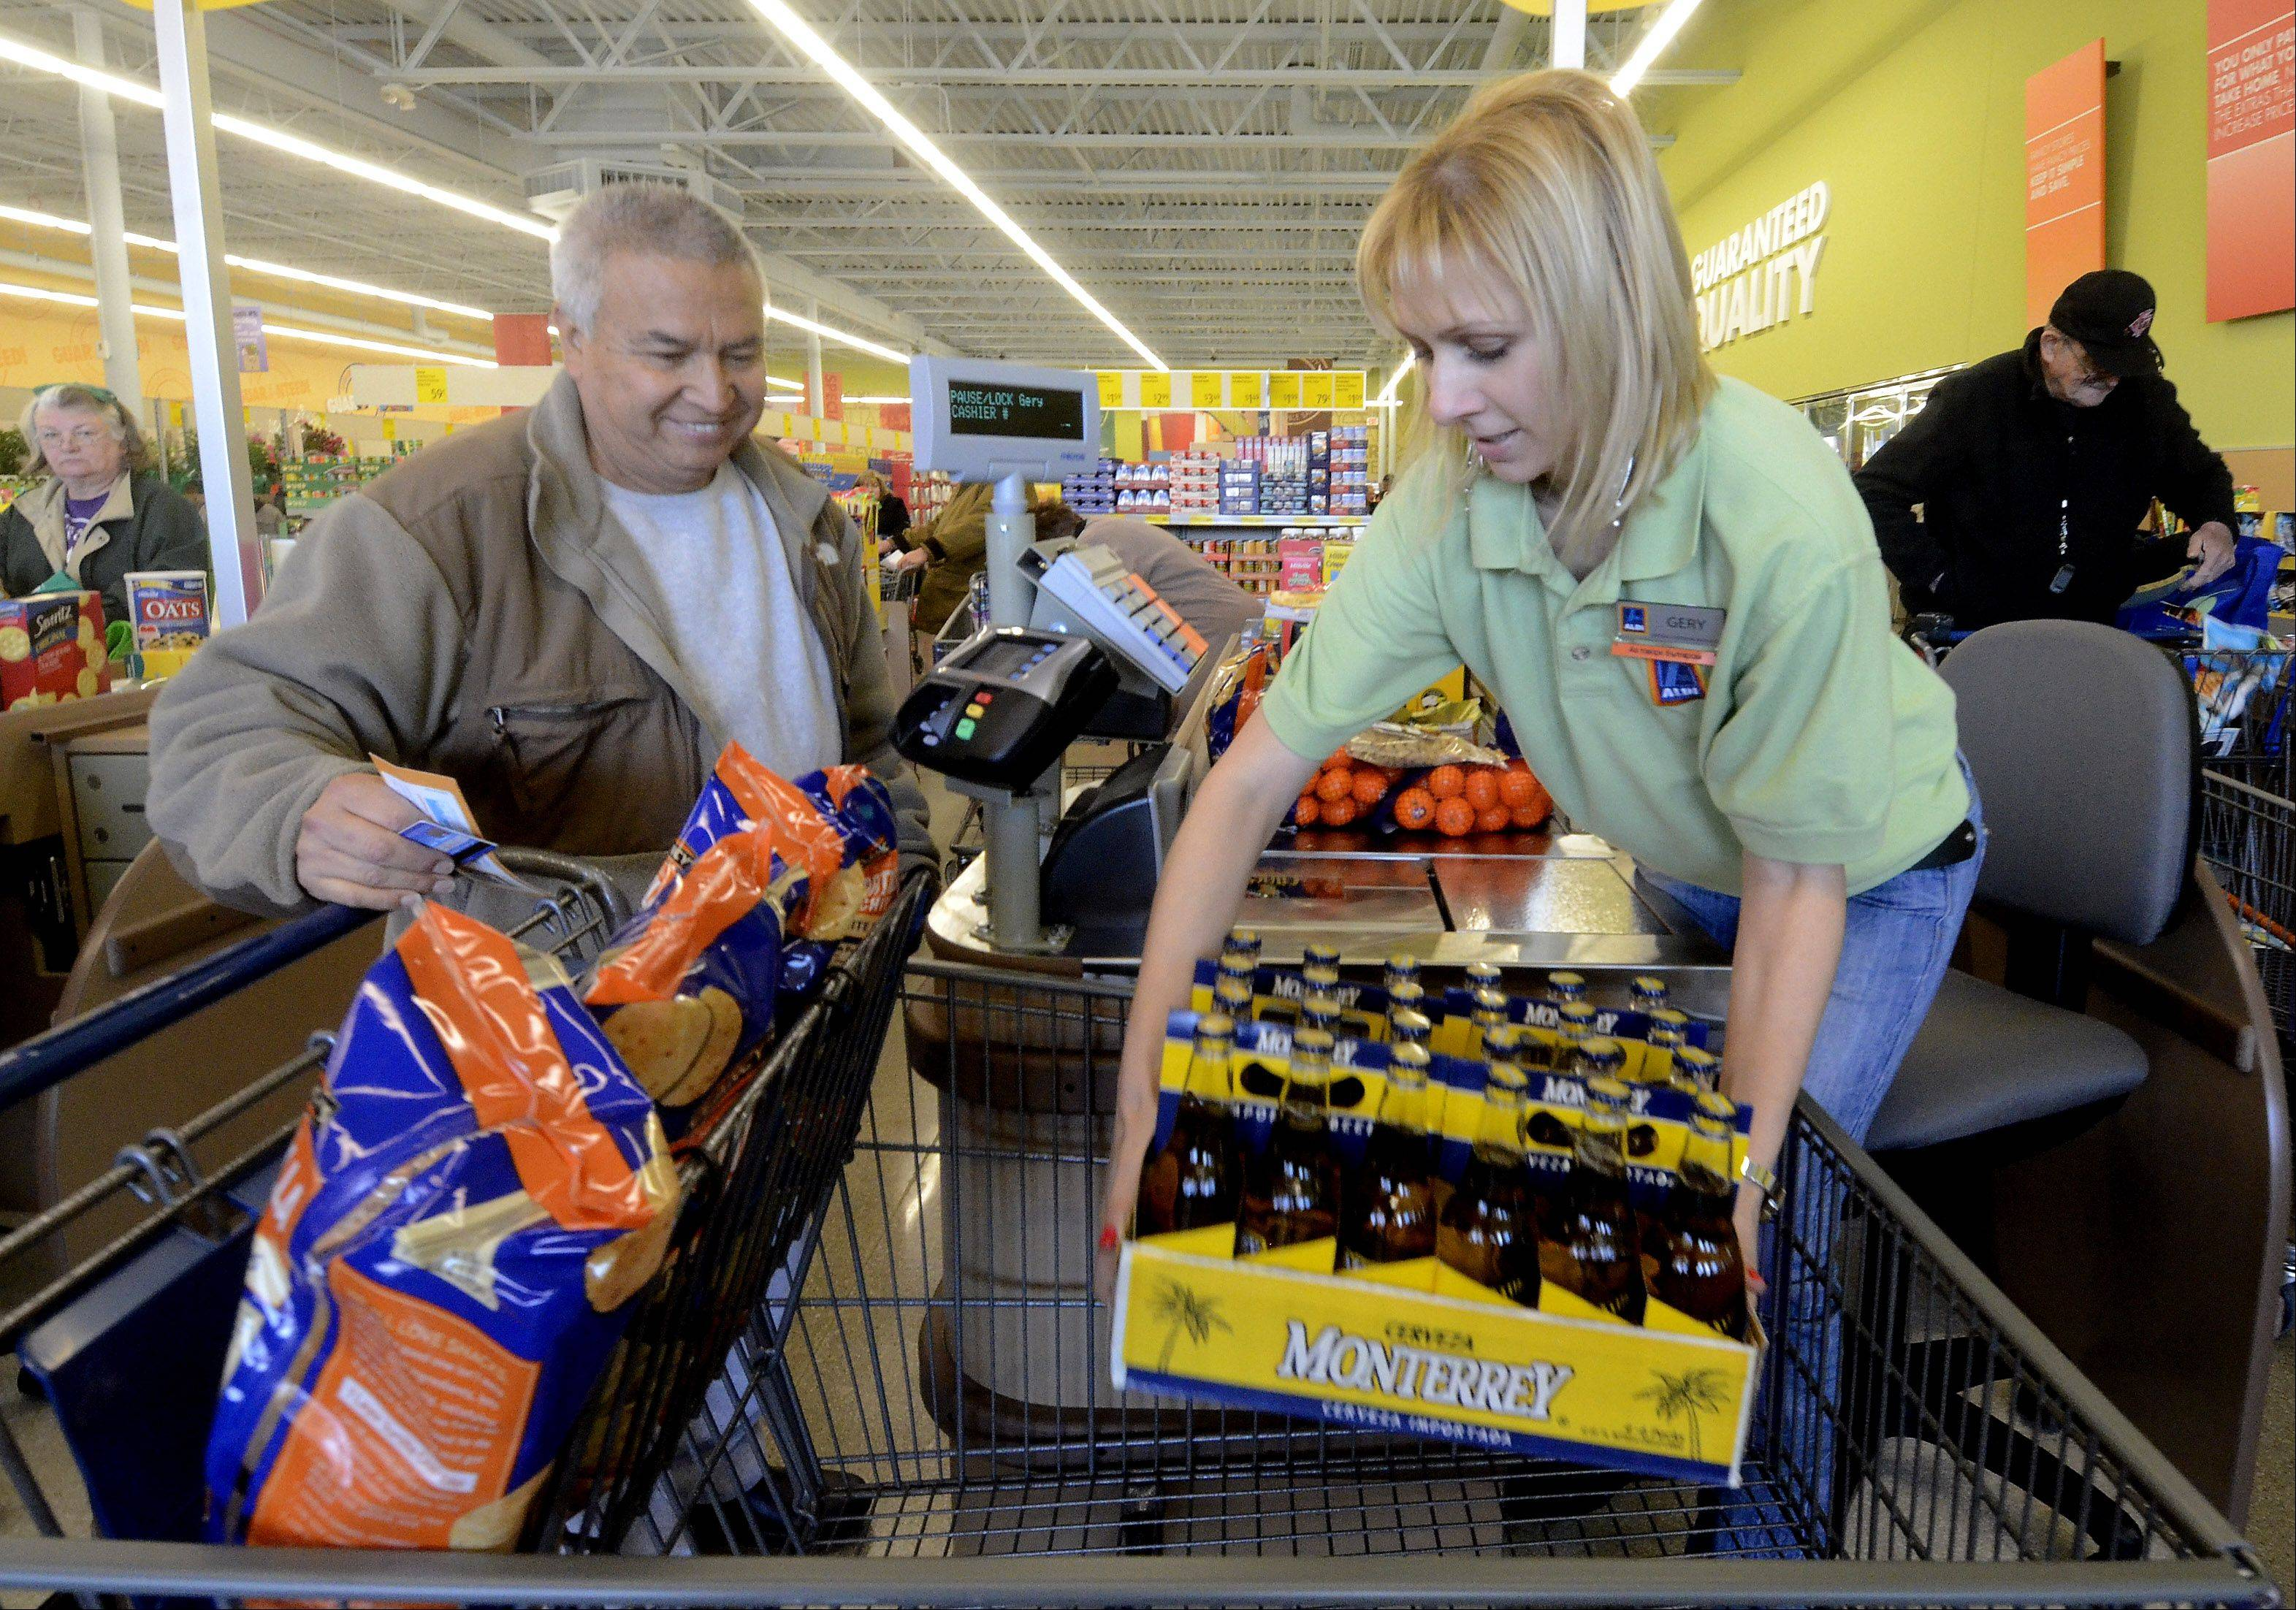 Cashier Gery Demitrova helps Salvador Ochoa to check out at the new Aldi grocery store which formally opened Thursday in Mount Prospect.